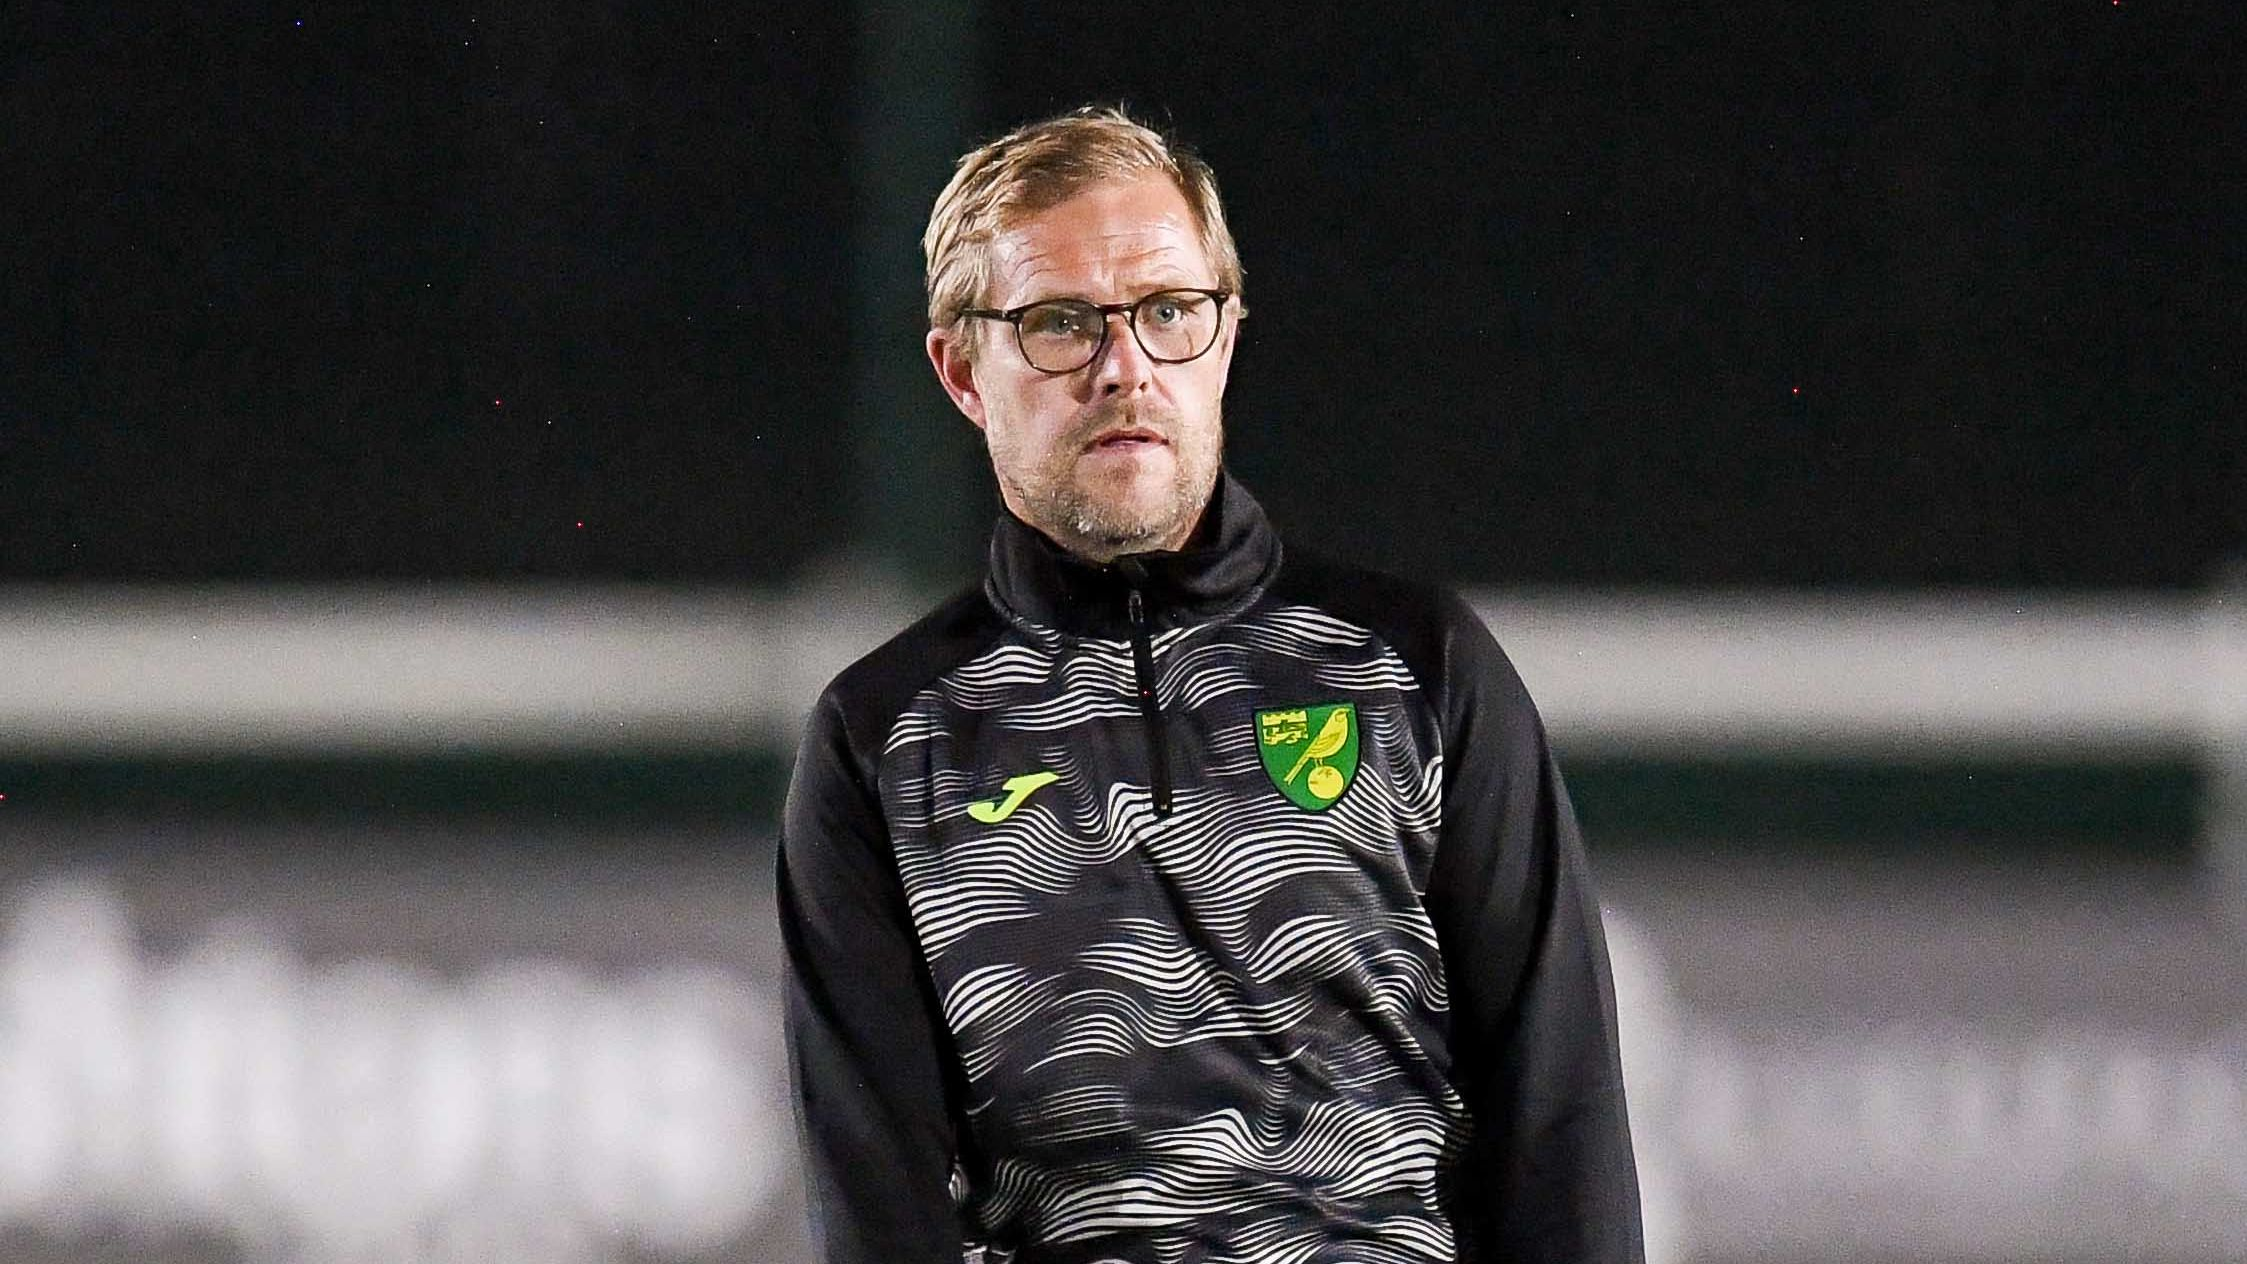 shaun-howes-pleased-with-improvements-as-norwich-city-women-fall-to-late-billericay-defeat